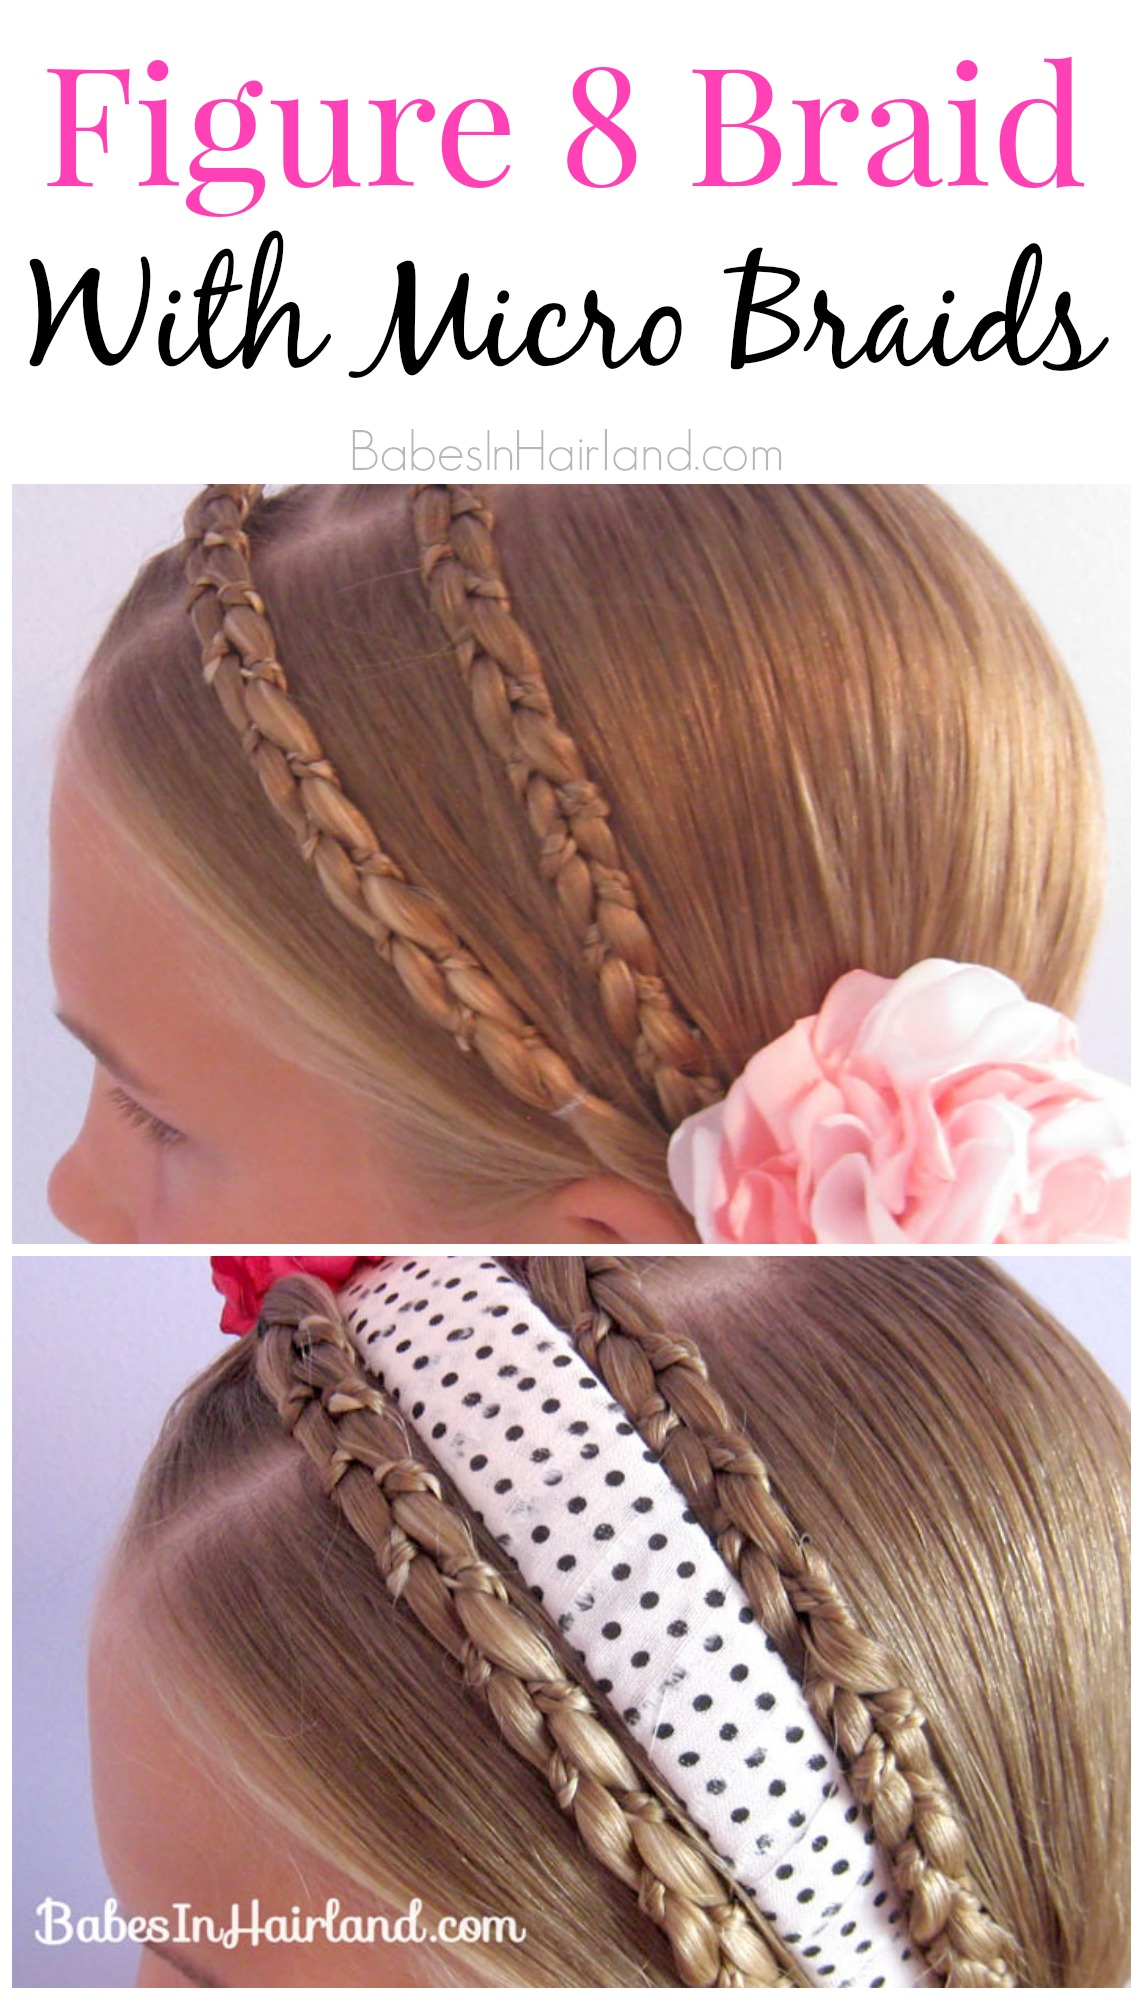 Figure 8 Braid with Micro Braids from BabesInHairland.com